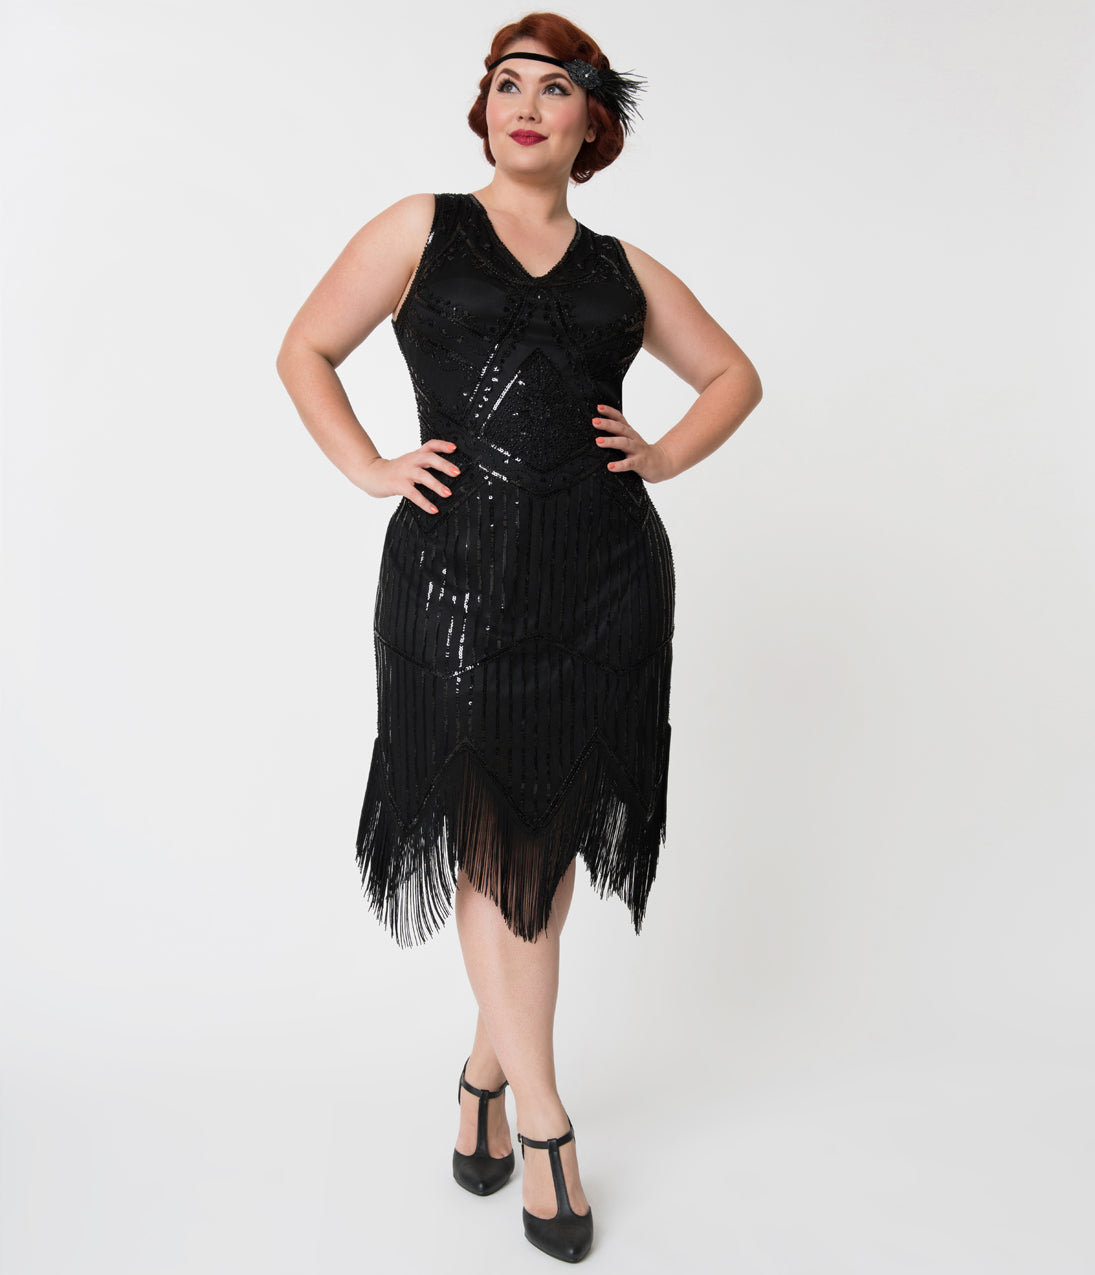 Vintage Evening Dresses and Formal Evening Gowns Unique Vintage Plus Size 1920S Black Beaded Sequin Juliette Fringe Flapper Dress $68.00 AT vintagedancer.com